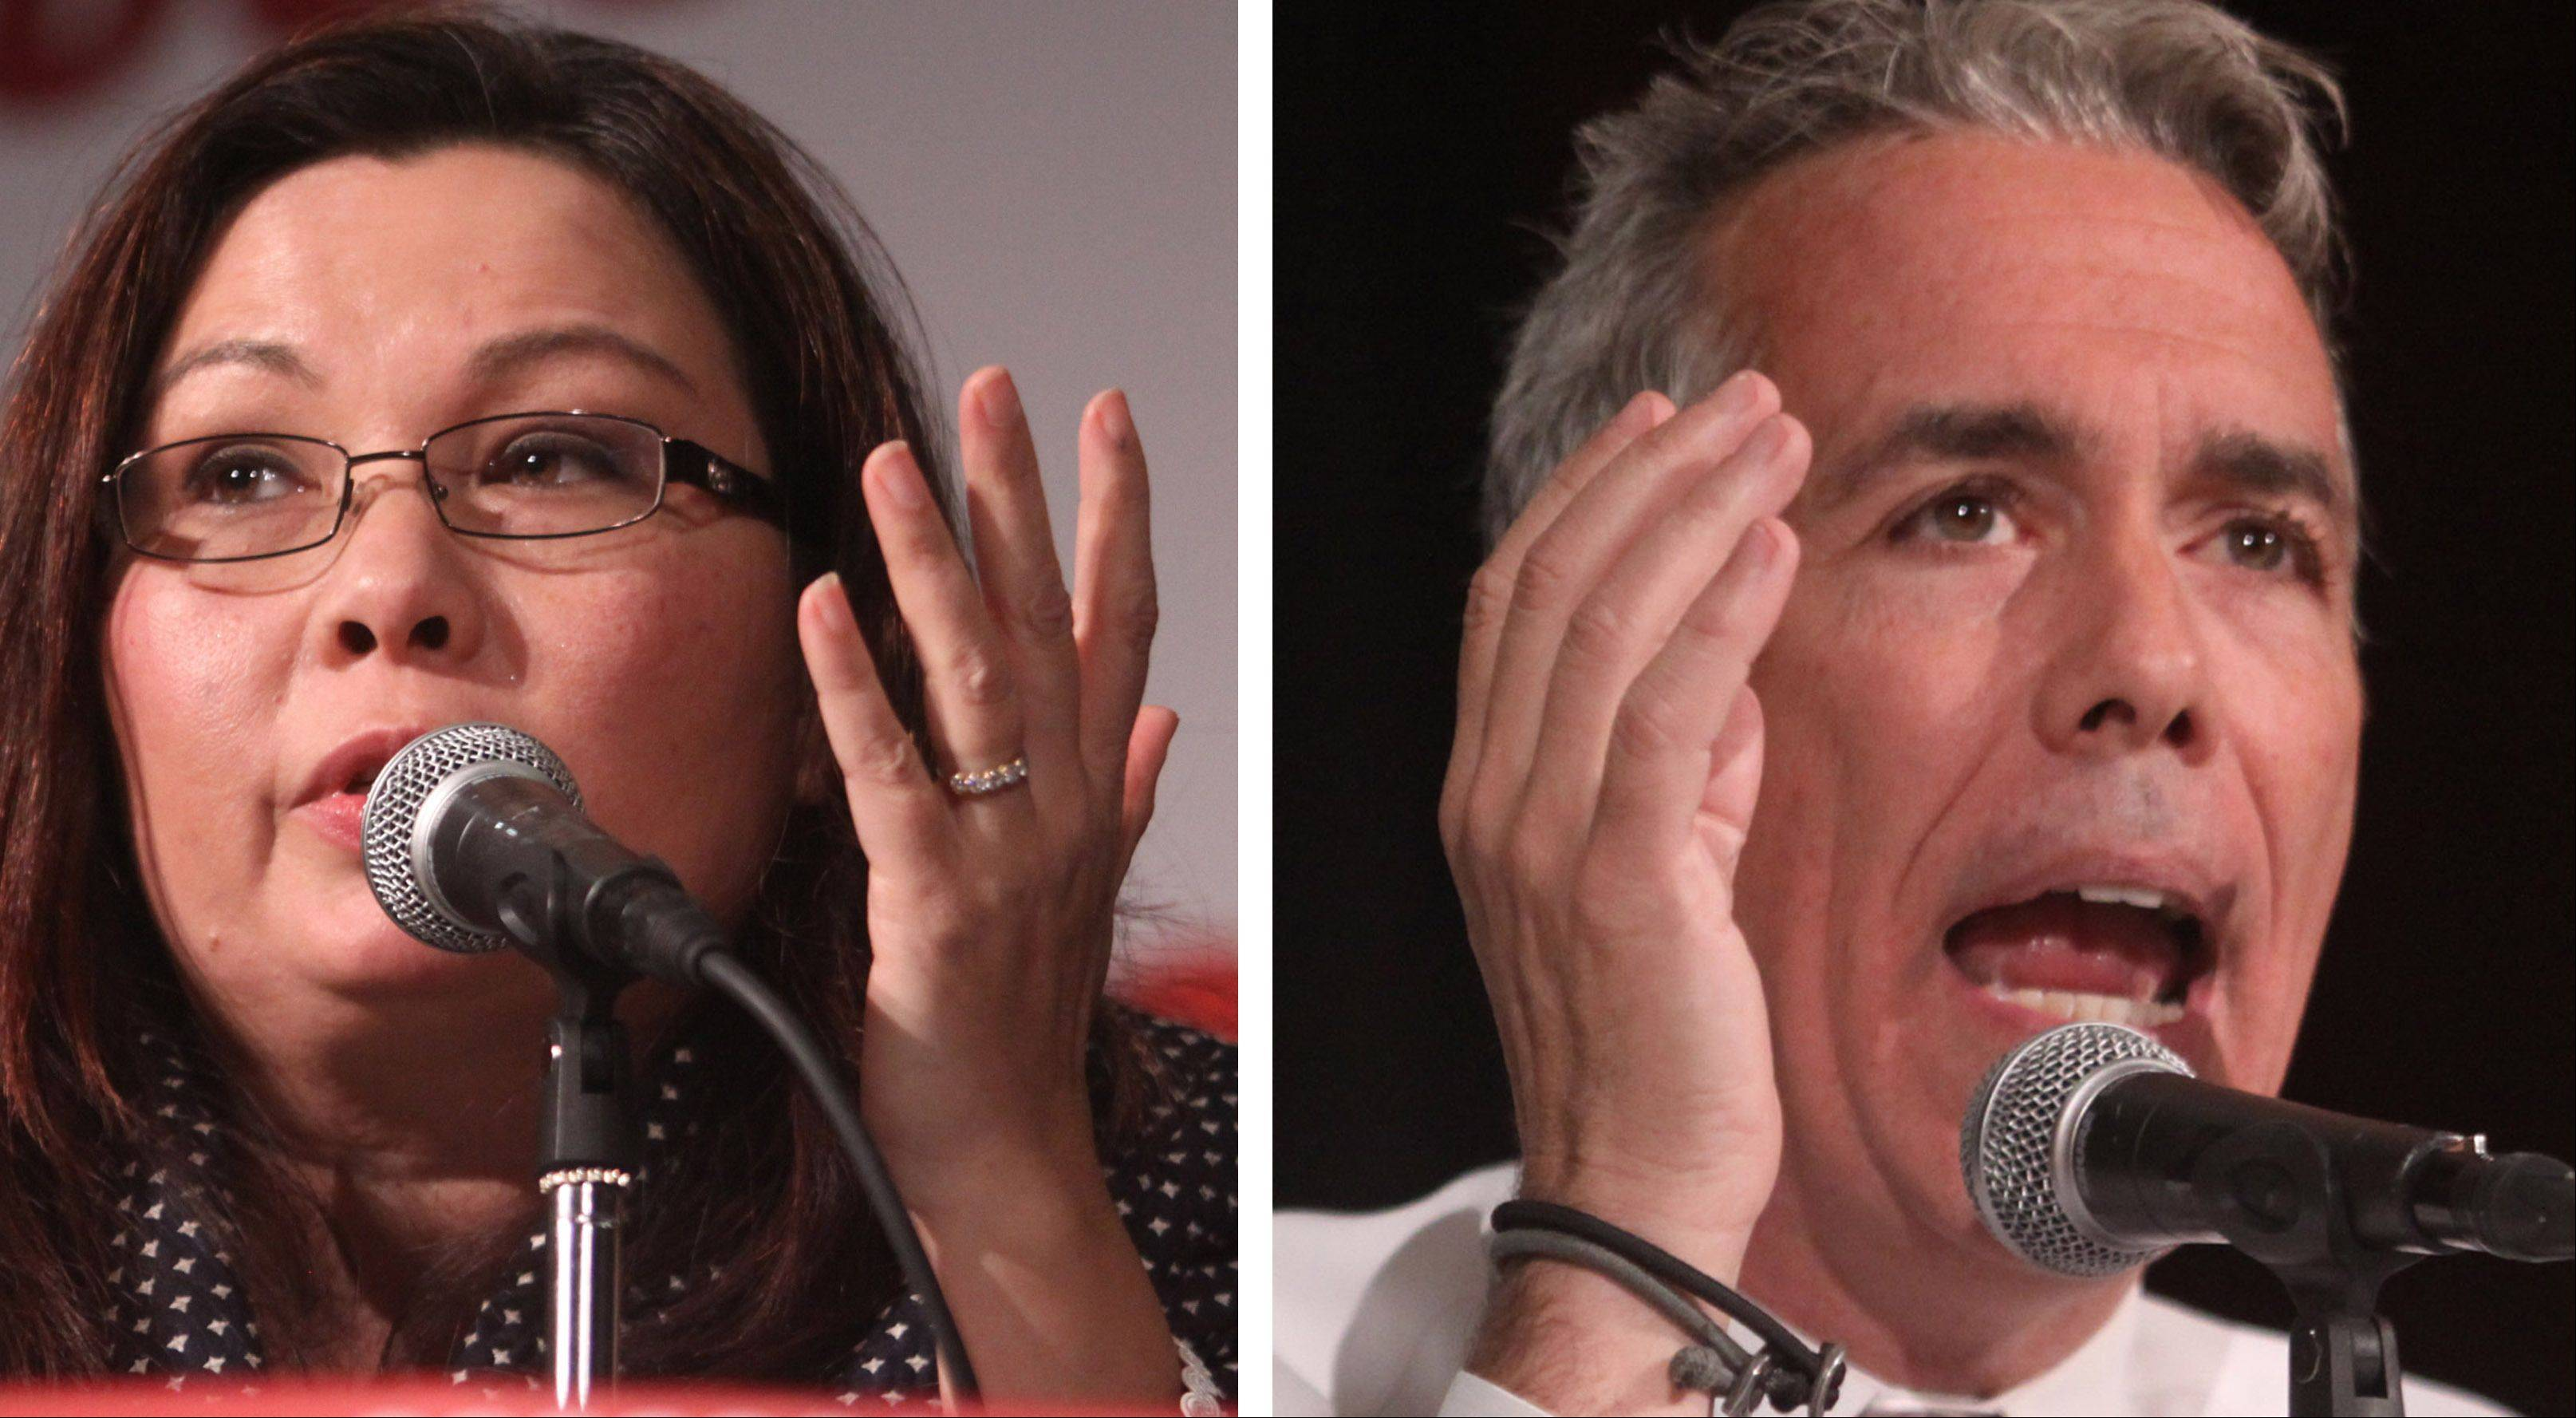 8th Congressional District candidates Tammy Duckworth and Joe Walsh debated Tuesday night at the Meadows Club in Rolling Meadows.